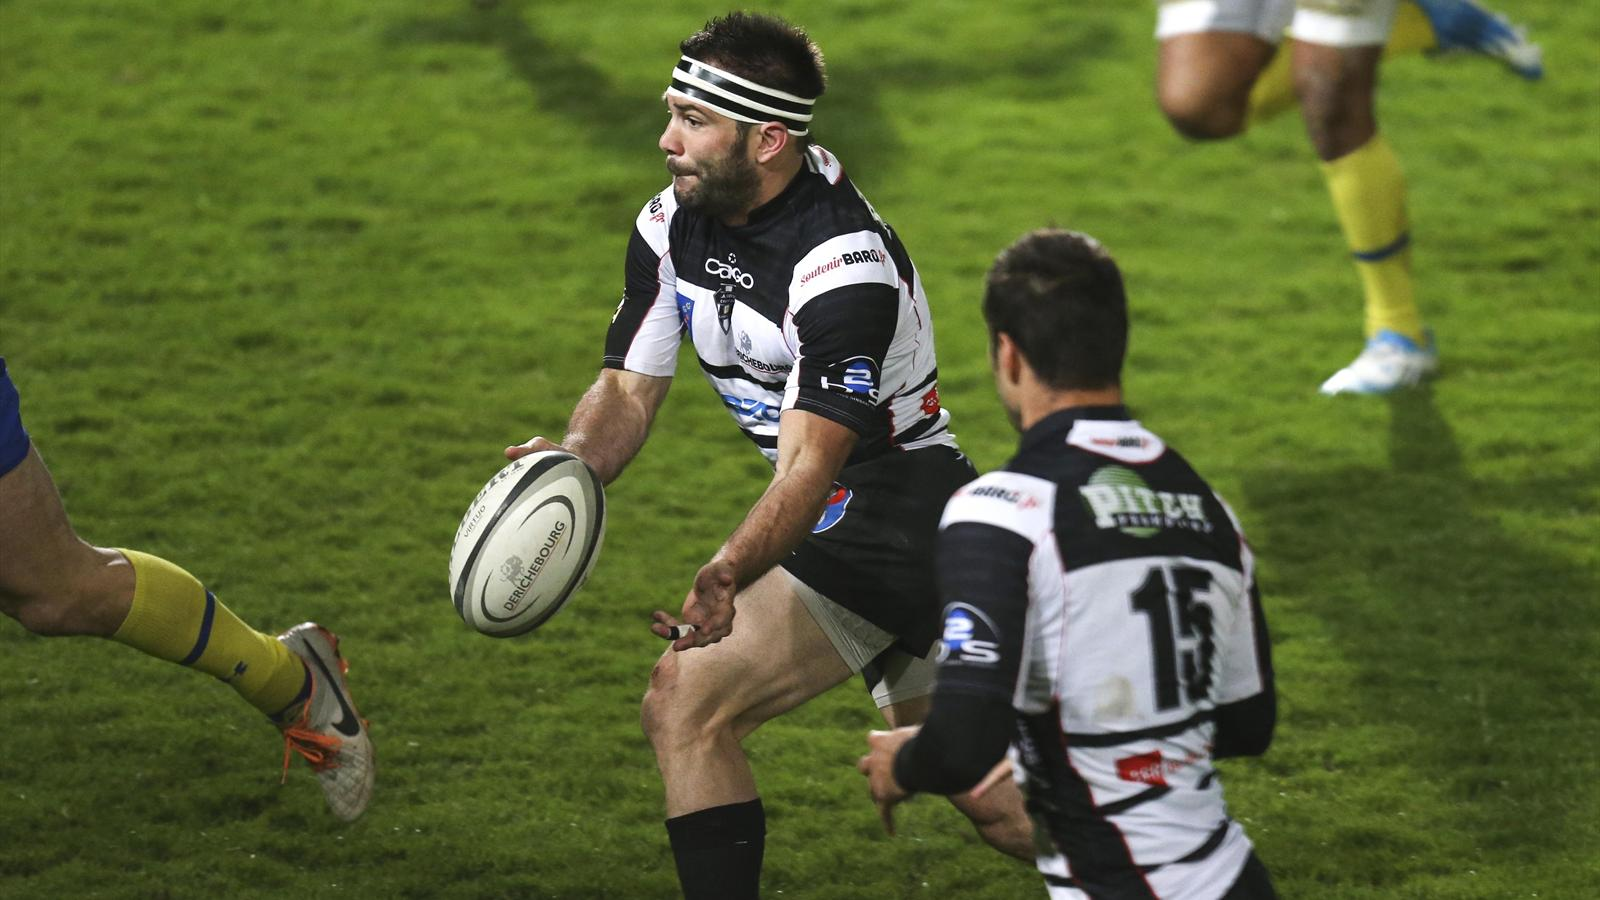 Match Rugby Top 14 CA Brive ASM Clermont en direct live streaming